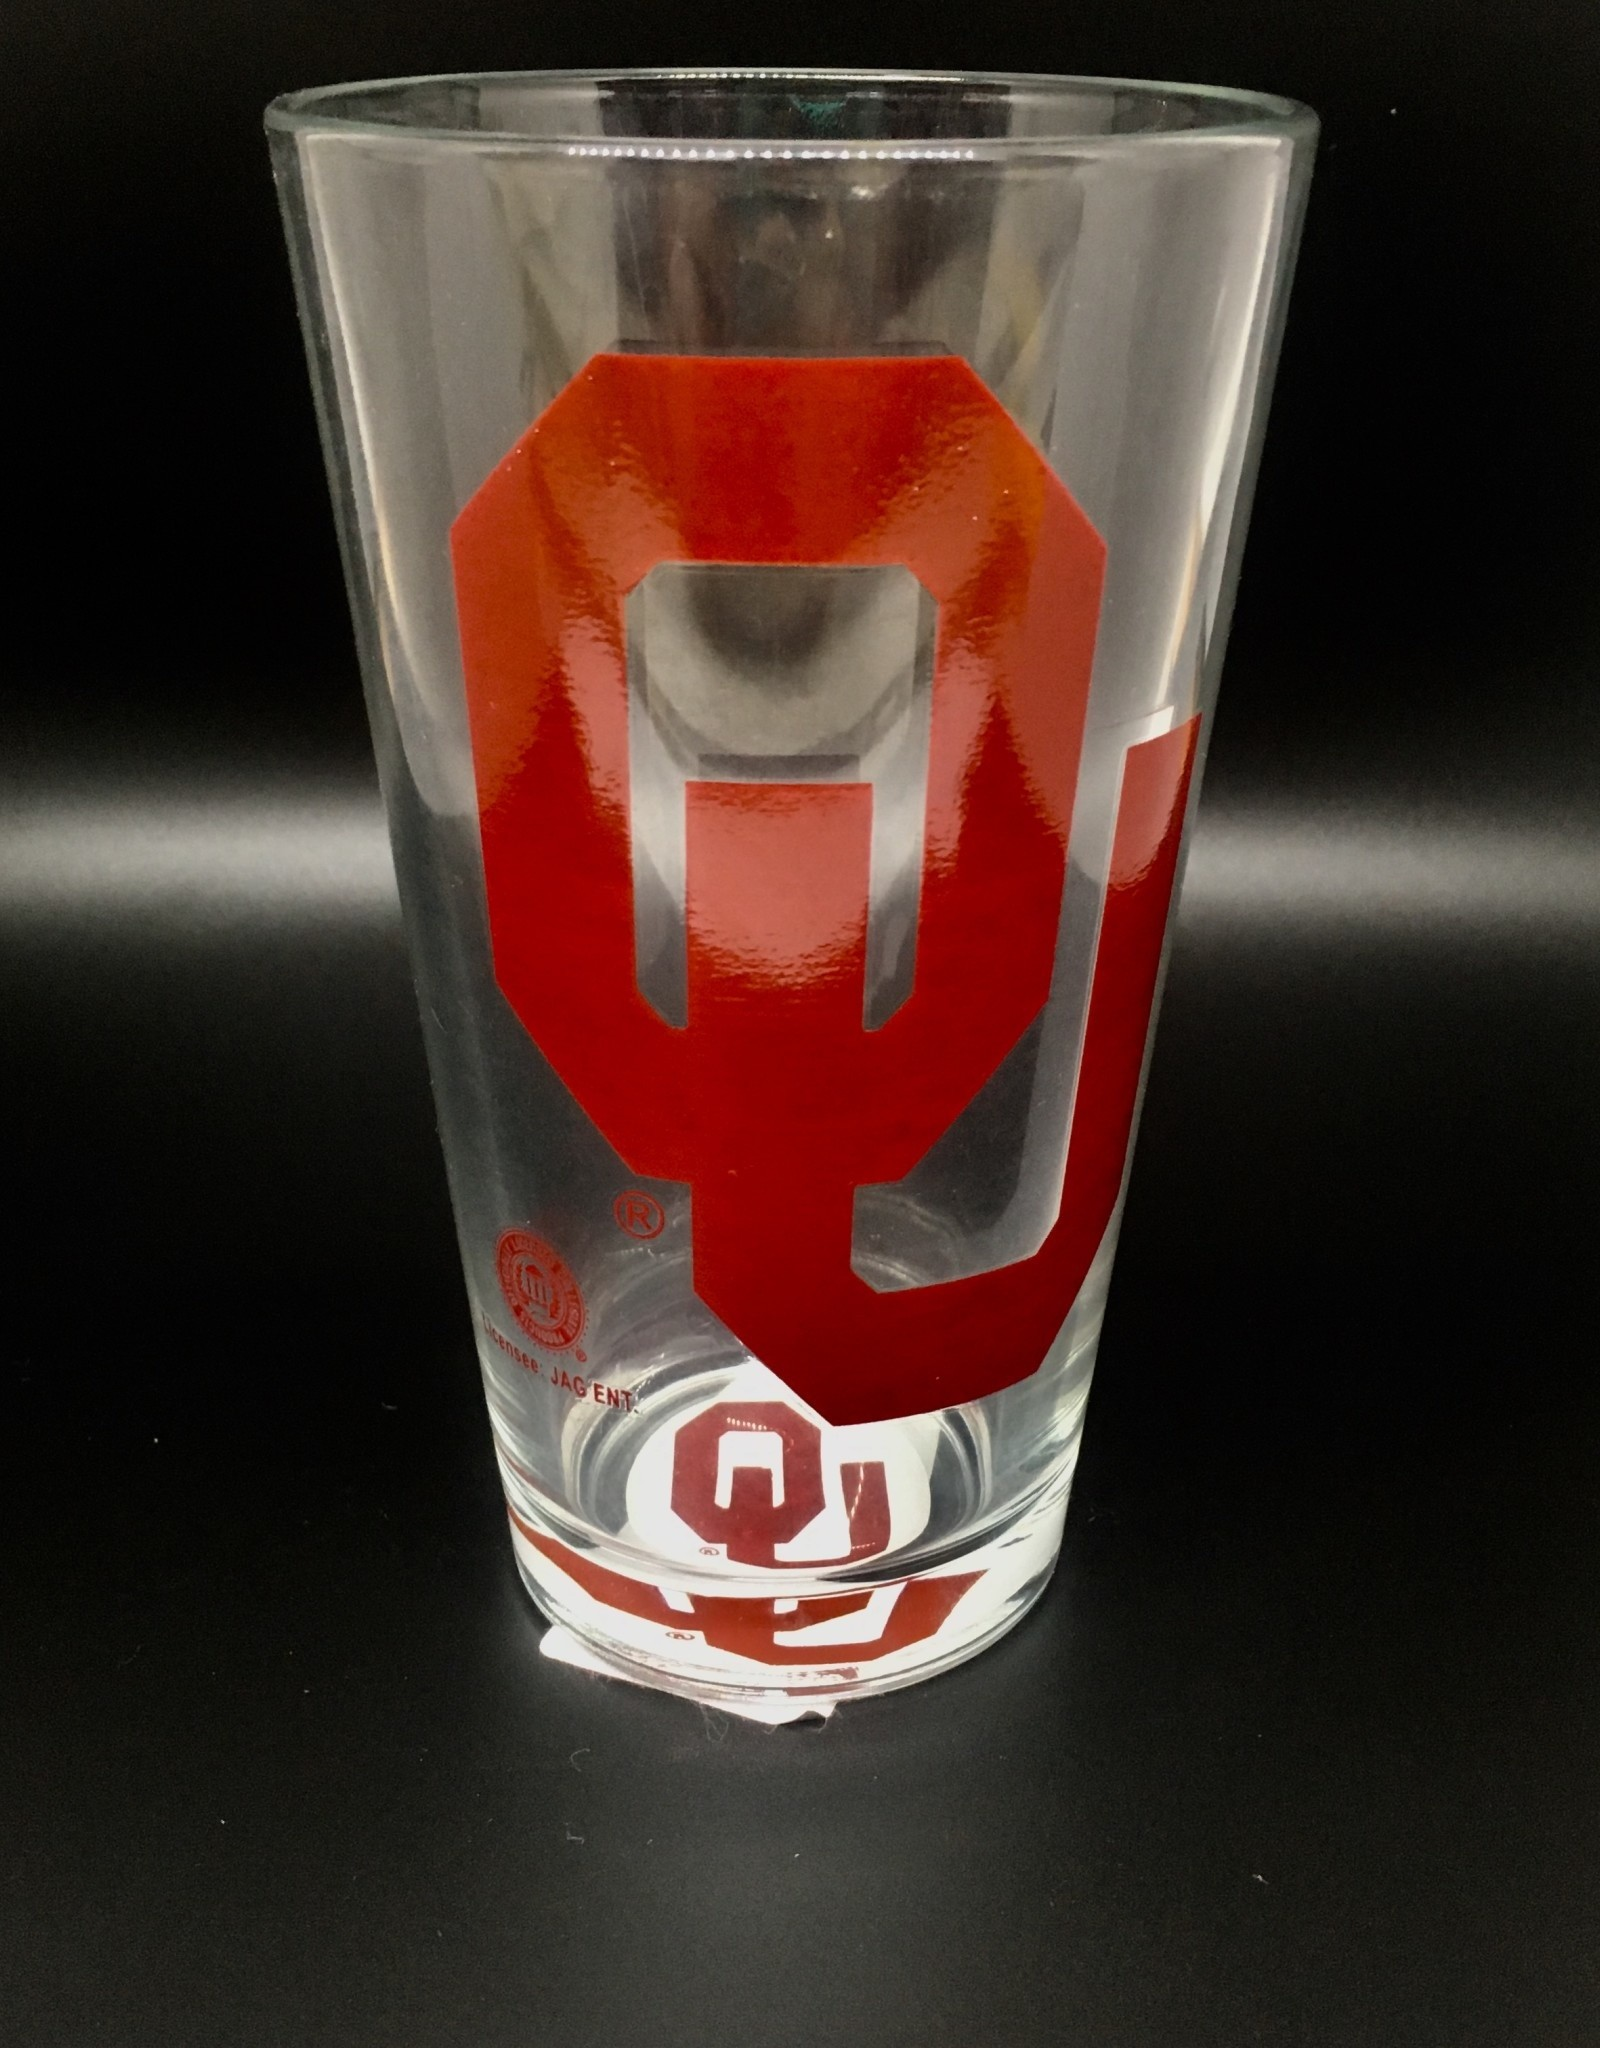 OU Screen Printed Pint Glass with OU In Bottom